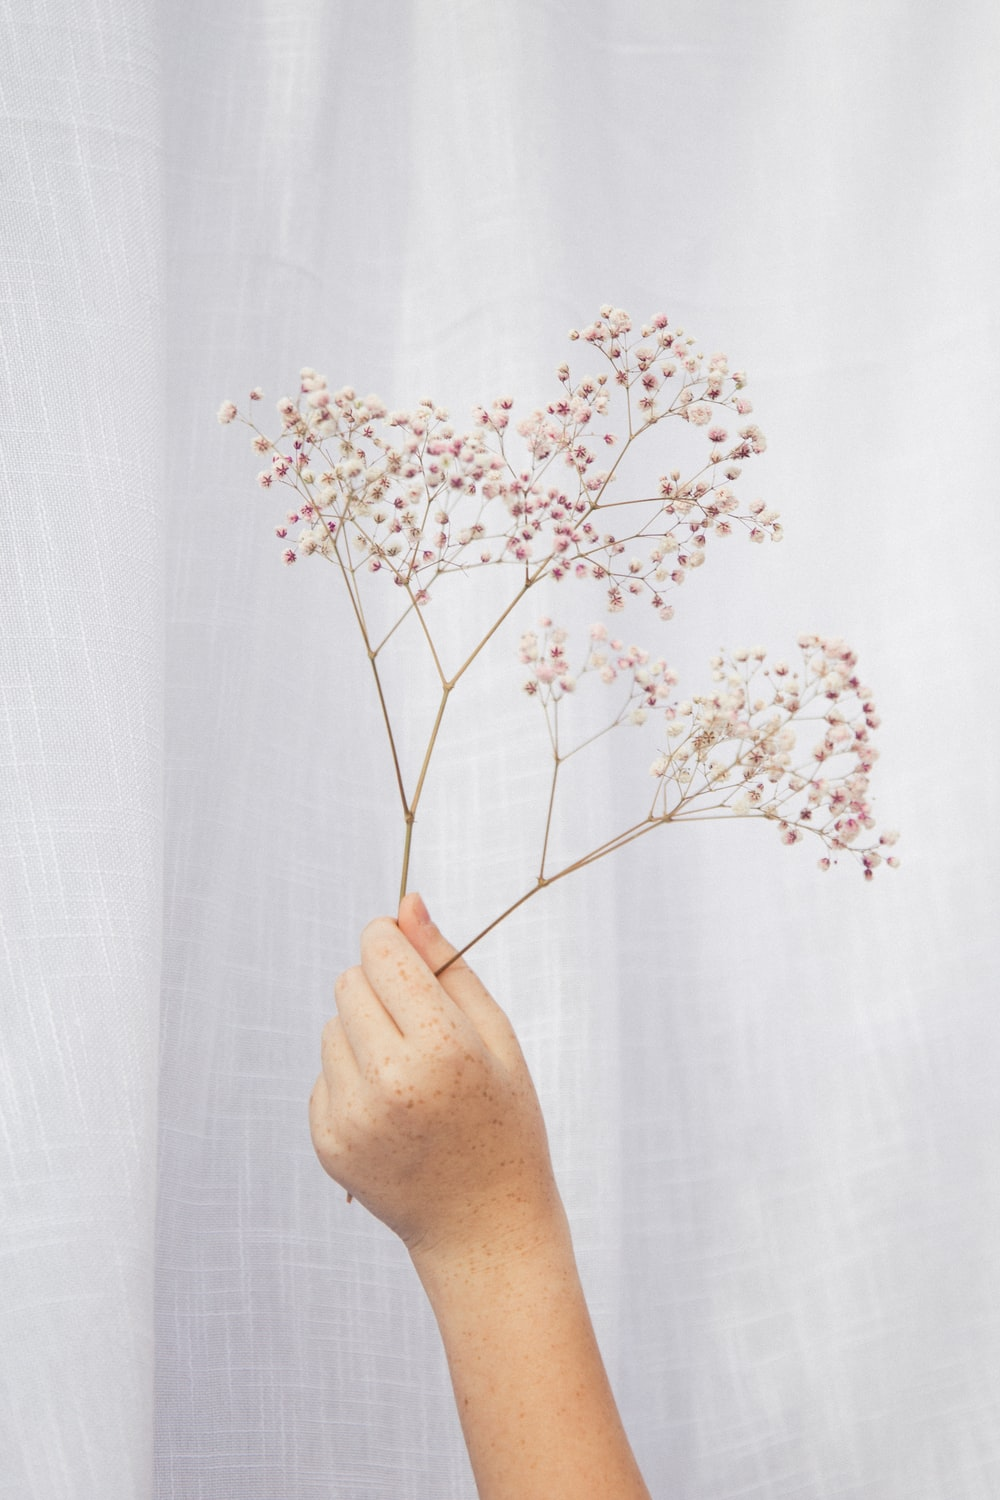 person holding white flower in front of white curtain